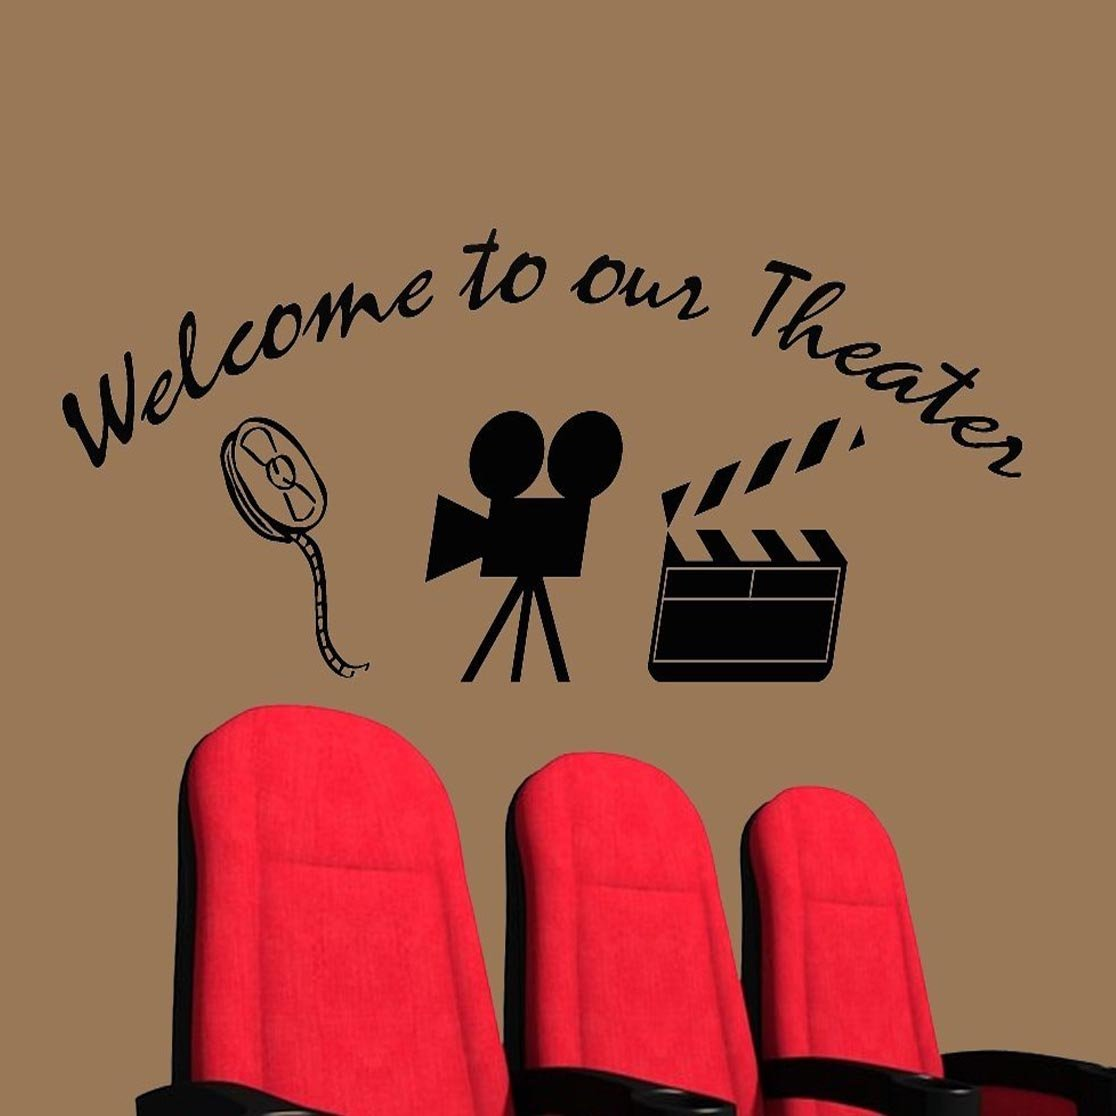 home movie theater decor wall decal welcome to our theater wall home movie theater decor wall decal welcome to our theater wall art wall decor stickers amazon com